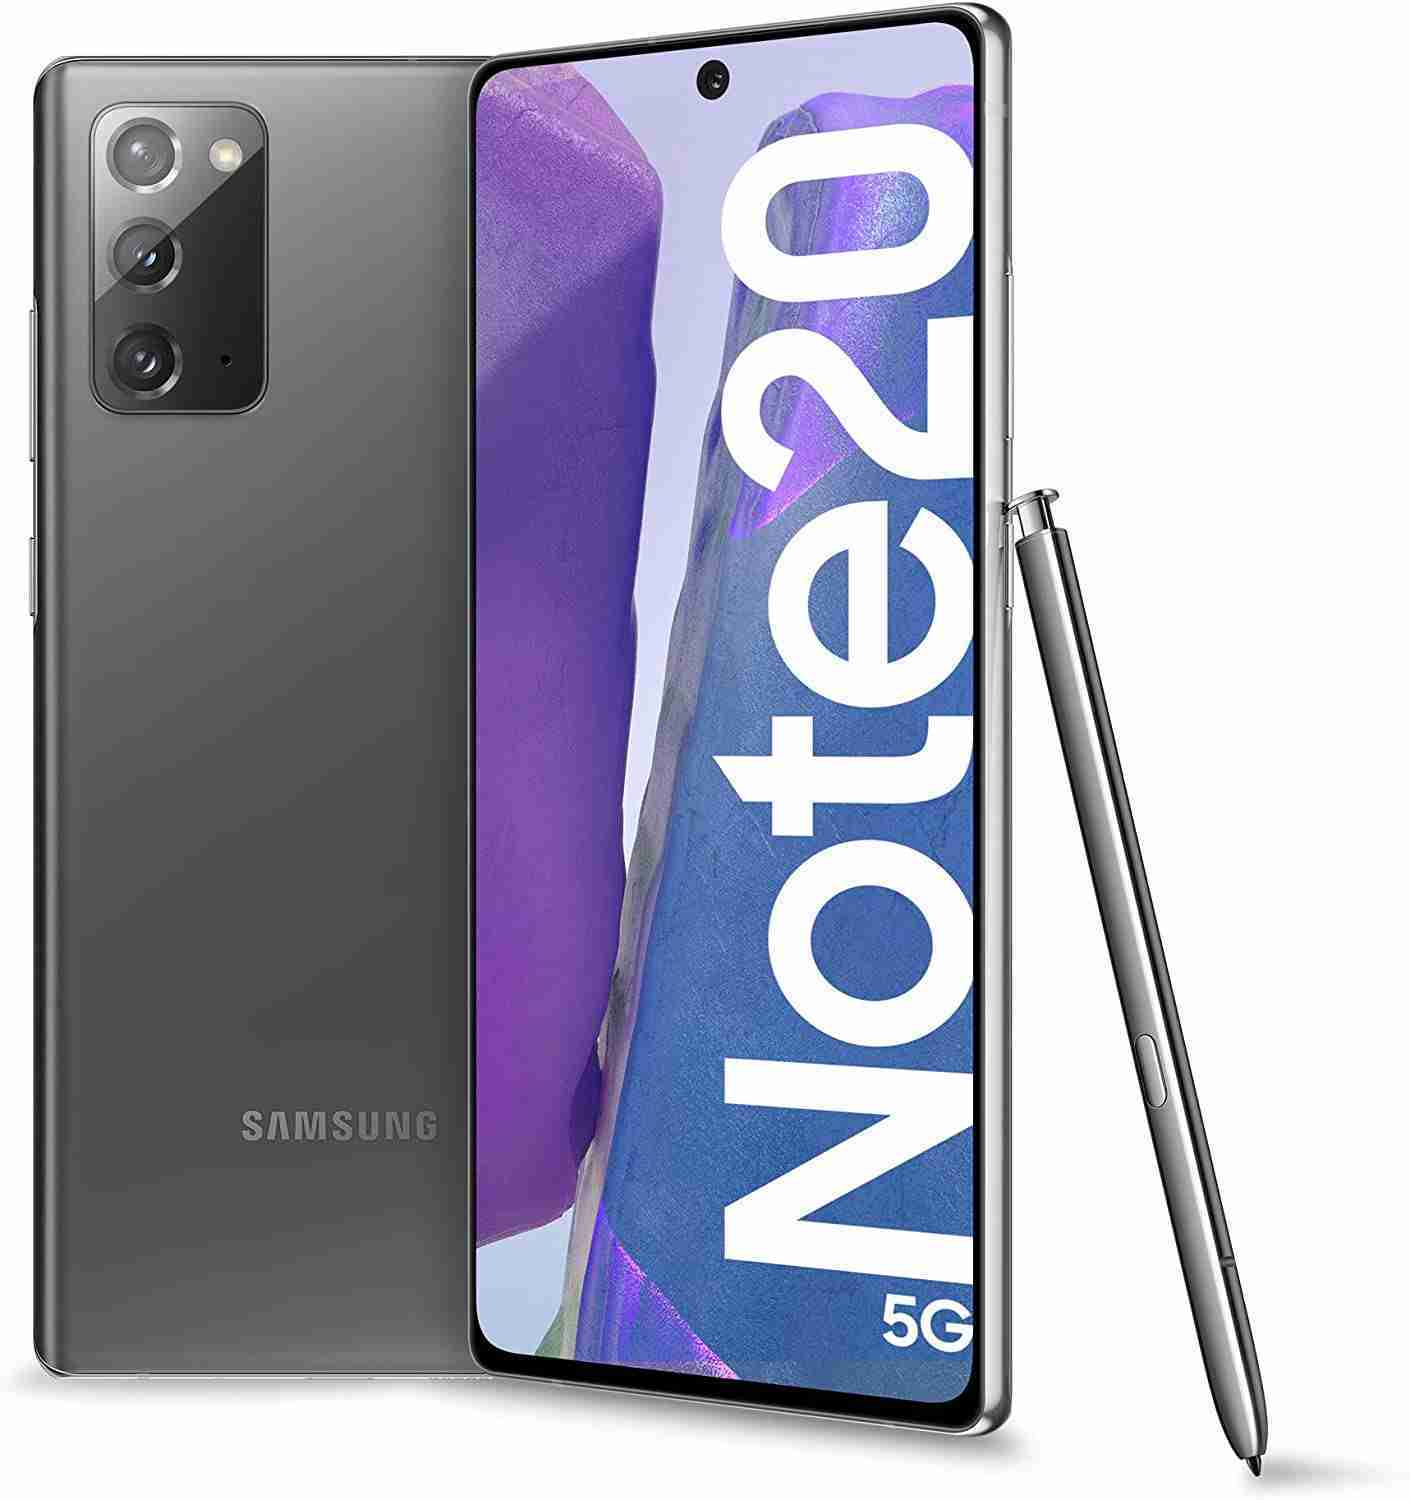 amsung Galaxy Note 20